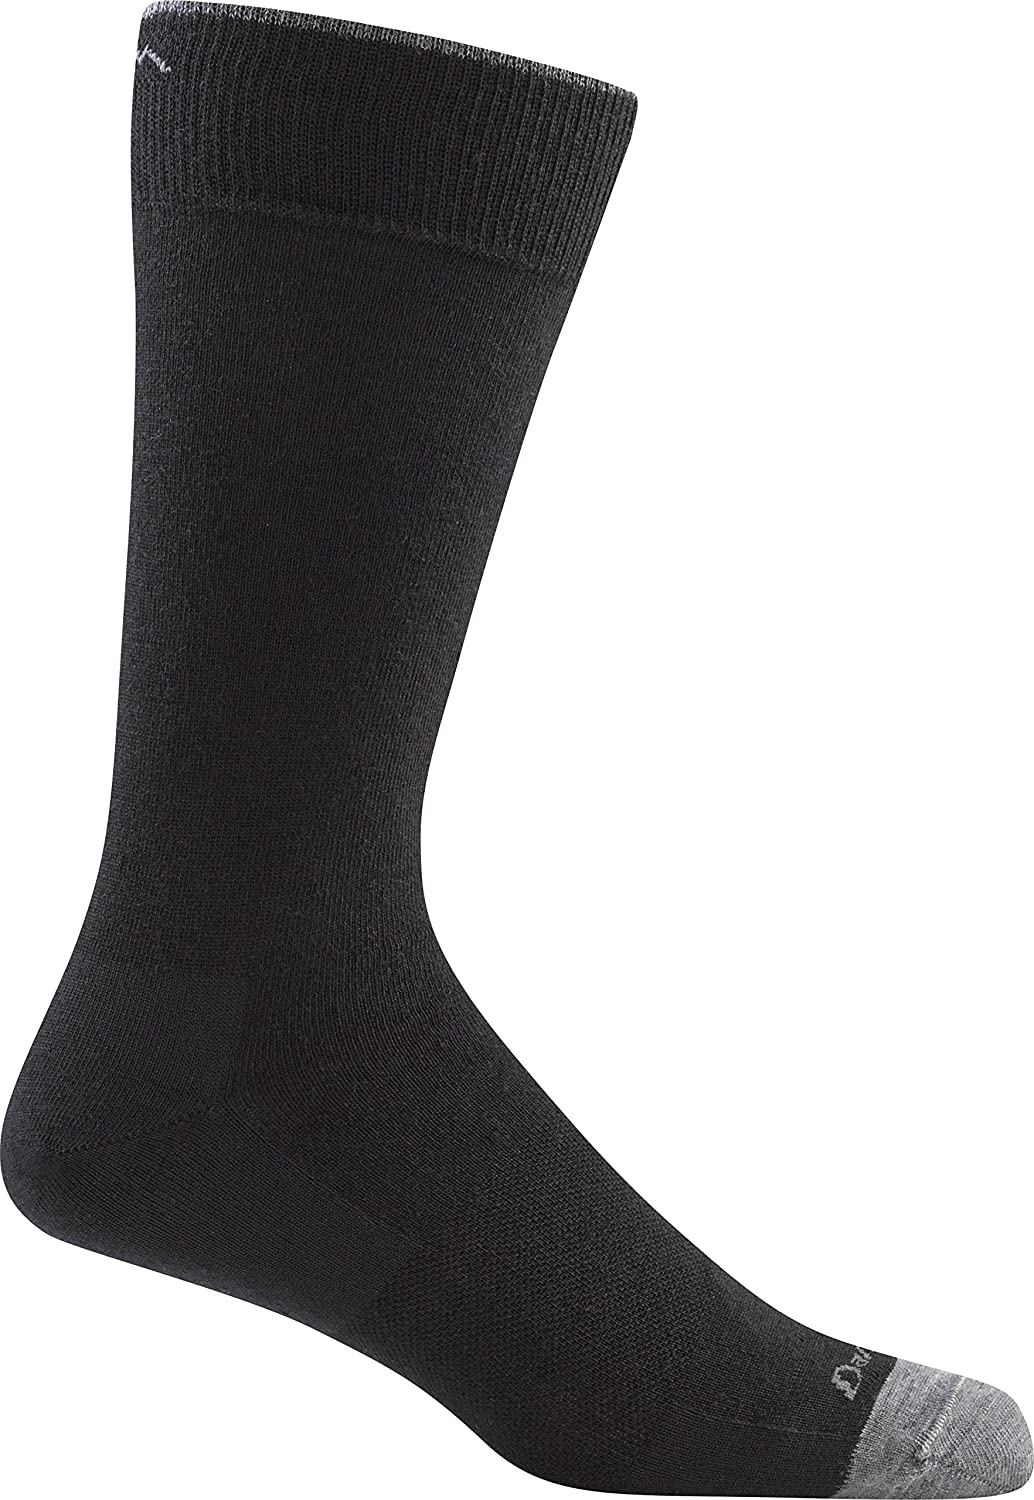 Darn Tough Men's Solid Crew Light Sock (Style 1617) Merino Wool - 6 Pack Special